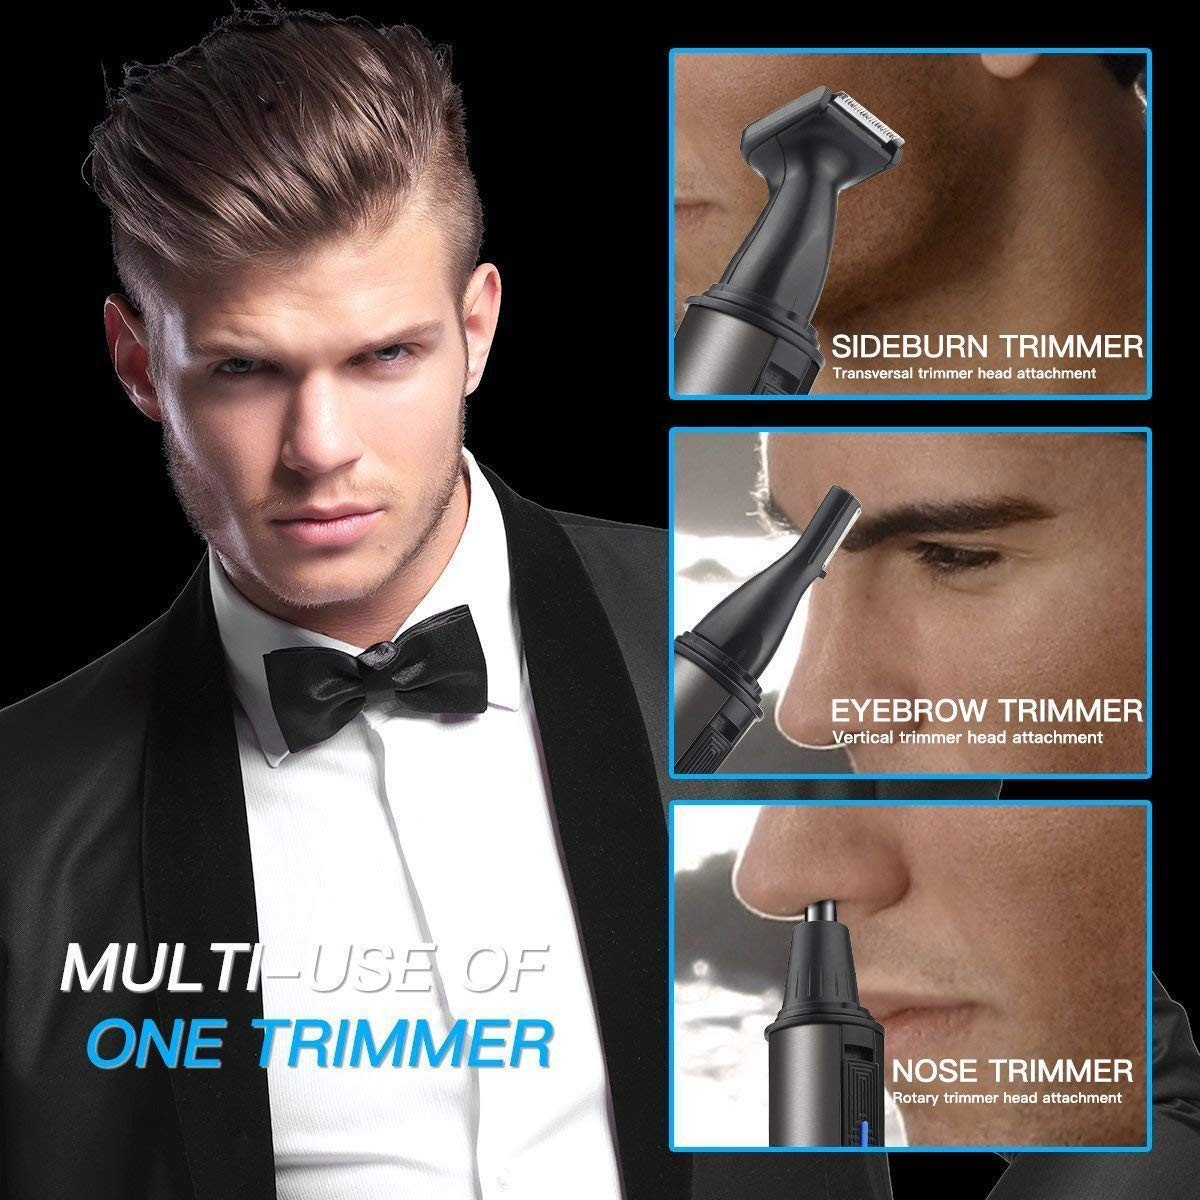 Nostril Nasal Hair Clippers Trimmers Removal, Nose Ear Beard Eyebrow Facial Body Hair Trimmer